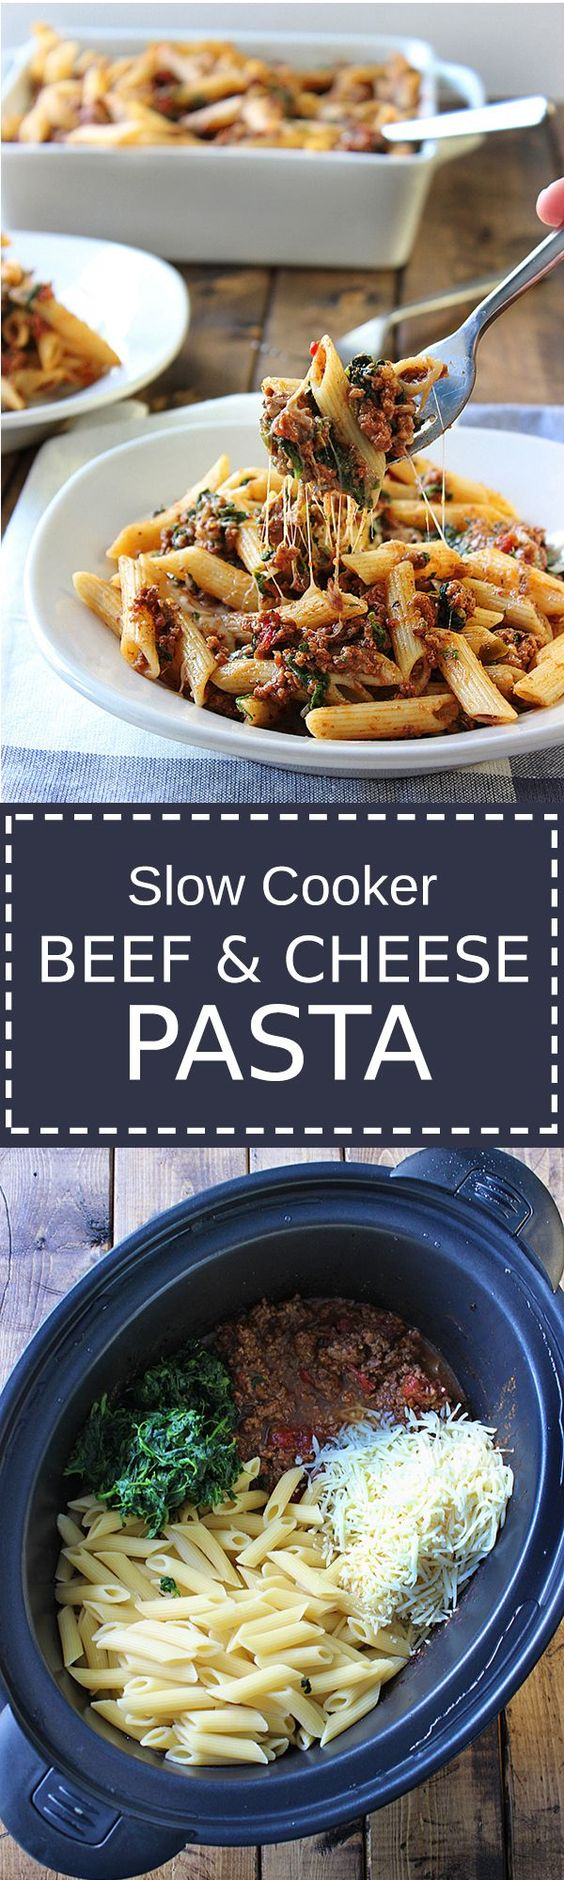 ... that is cooked long and slow to bring out the best cheesy meat sauce